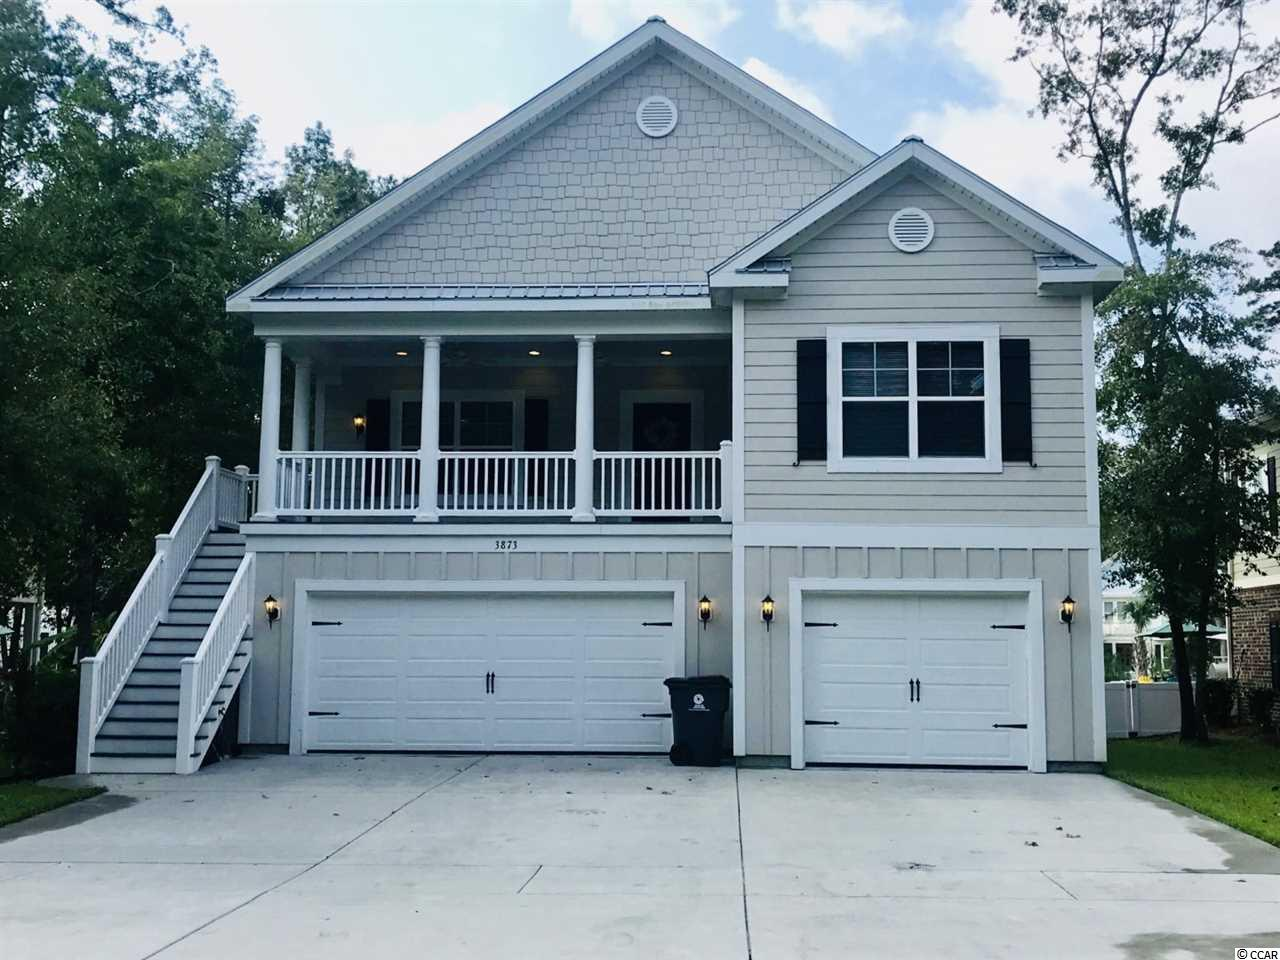 Beautiful two-story 4BR/3BA pool home within walking distance of the Marshwalk, public boat ramp, shopping and dining.  Unique features include a new salt-water pool with waterfall, 3-car garage, fenced-in backyard on community pond, first and second floor laundry rooms and propane tankless water heater.  No HOA fees.  Some furniture available if desired. First floor has two large guest bedrooms with large closets, 1 full bath, laundry room with large storage area.  3-car garage and driveway can hold 6 vehicles.  You can park your boat and/or RV in the driveway. Second floor has large master bedroom, master bath with garden tub, separate shower, huge walk-in closet with washer/dryer hook-ups.  Guest bedroom, another full bathroom, living room, breakfast nook and kitchen with stainless appliances and granite countertops/bar.  Attic access via master closet. Outdoor space has new salt-water pool with waterfall, fenced-in back yard on community pond, new sod, built-in gas grill, sink and small refrigerator.